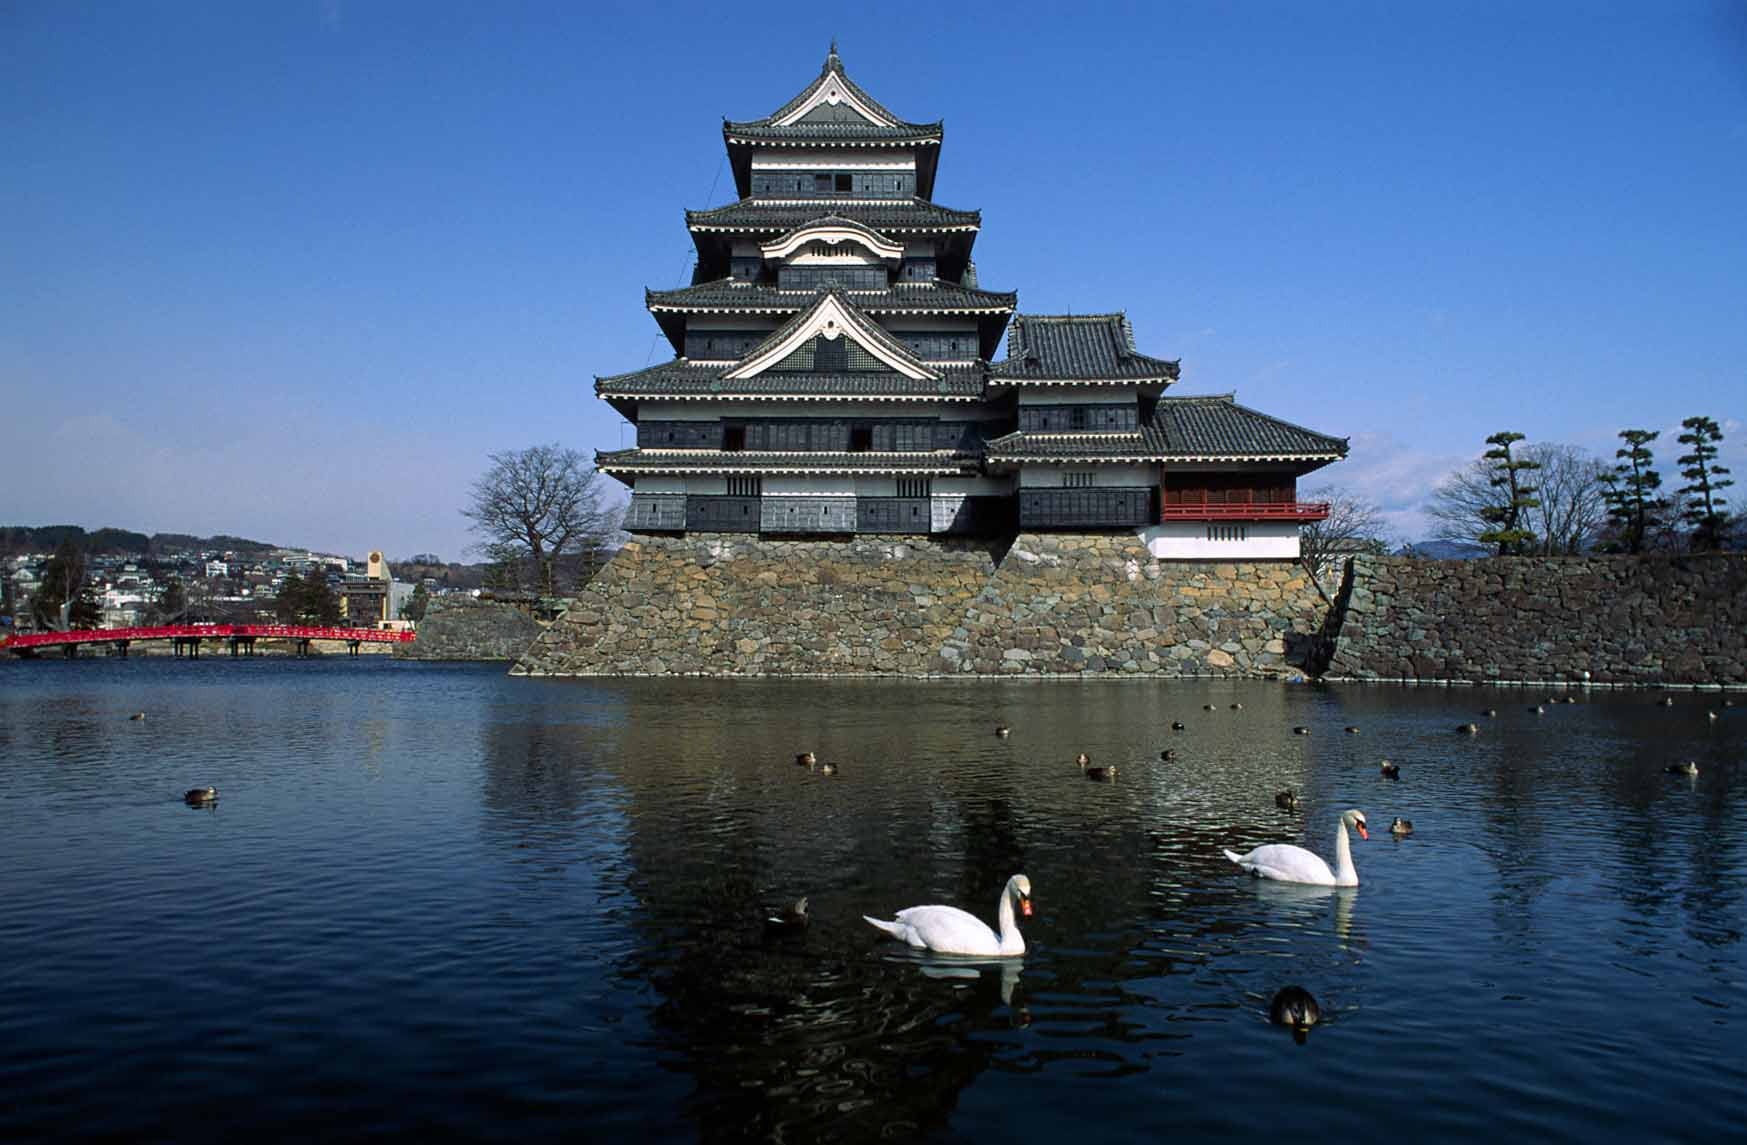 Matsumoto Castle Japan with two white swans